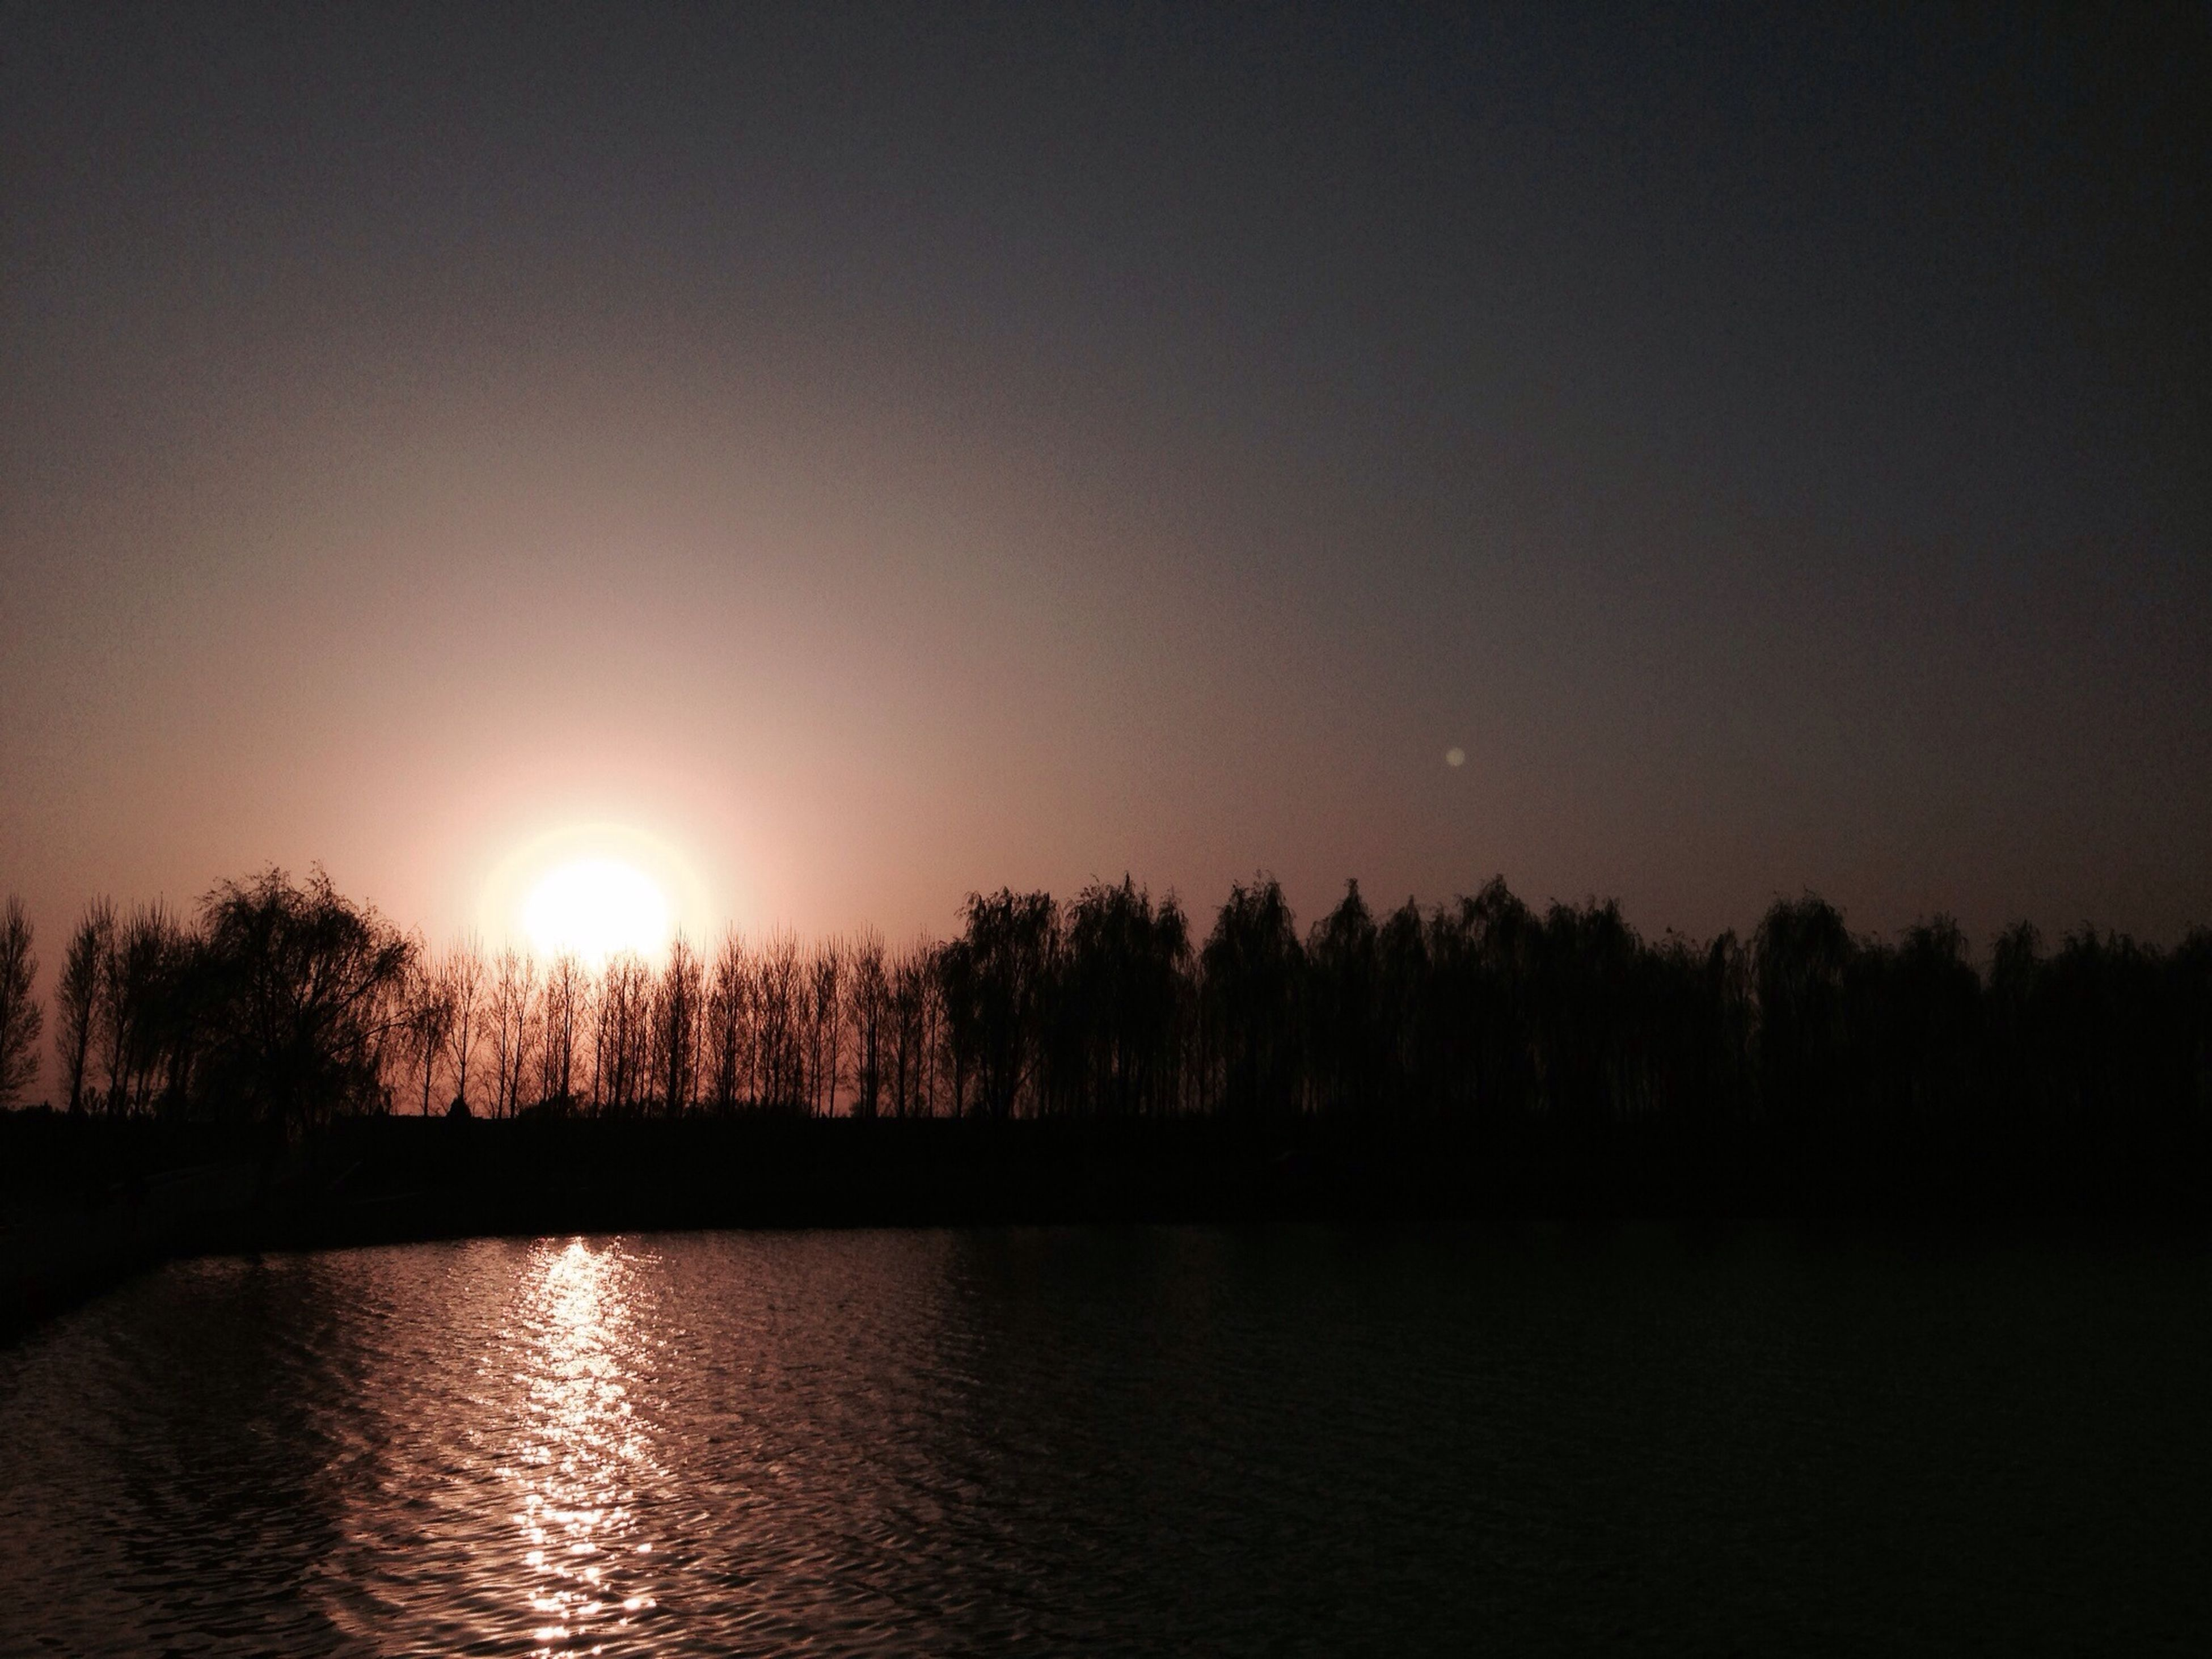 sunset, water, sun, tranquil scene, silhouette, tranquility, scenics, tree, beauty in nature, waterfront, reflection, lake, nature, idyllic, clear sky, sunlight, river, sky, copy space, outdoors